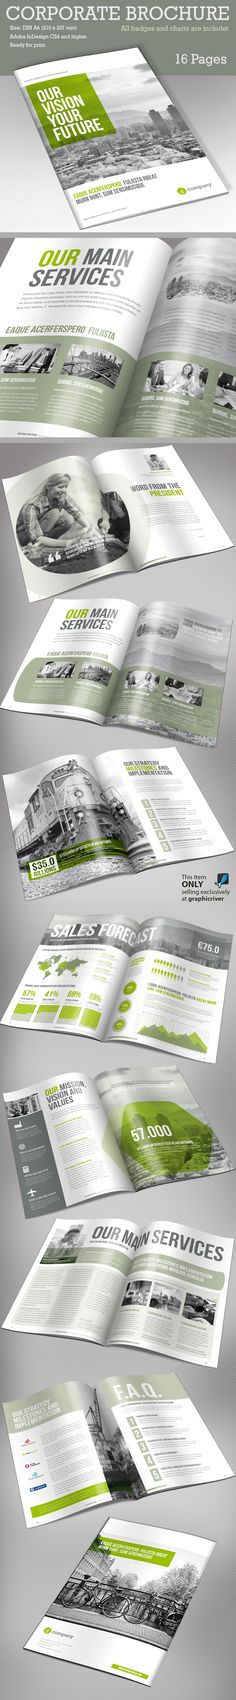 Brochure Corporativo Vol. 2 de Paulnomade Paulnomade, a través de Behance